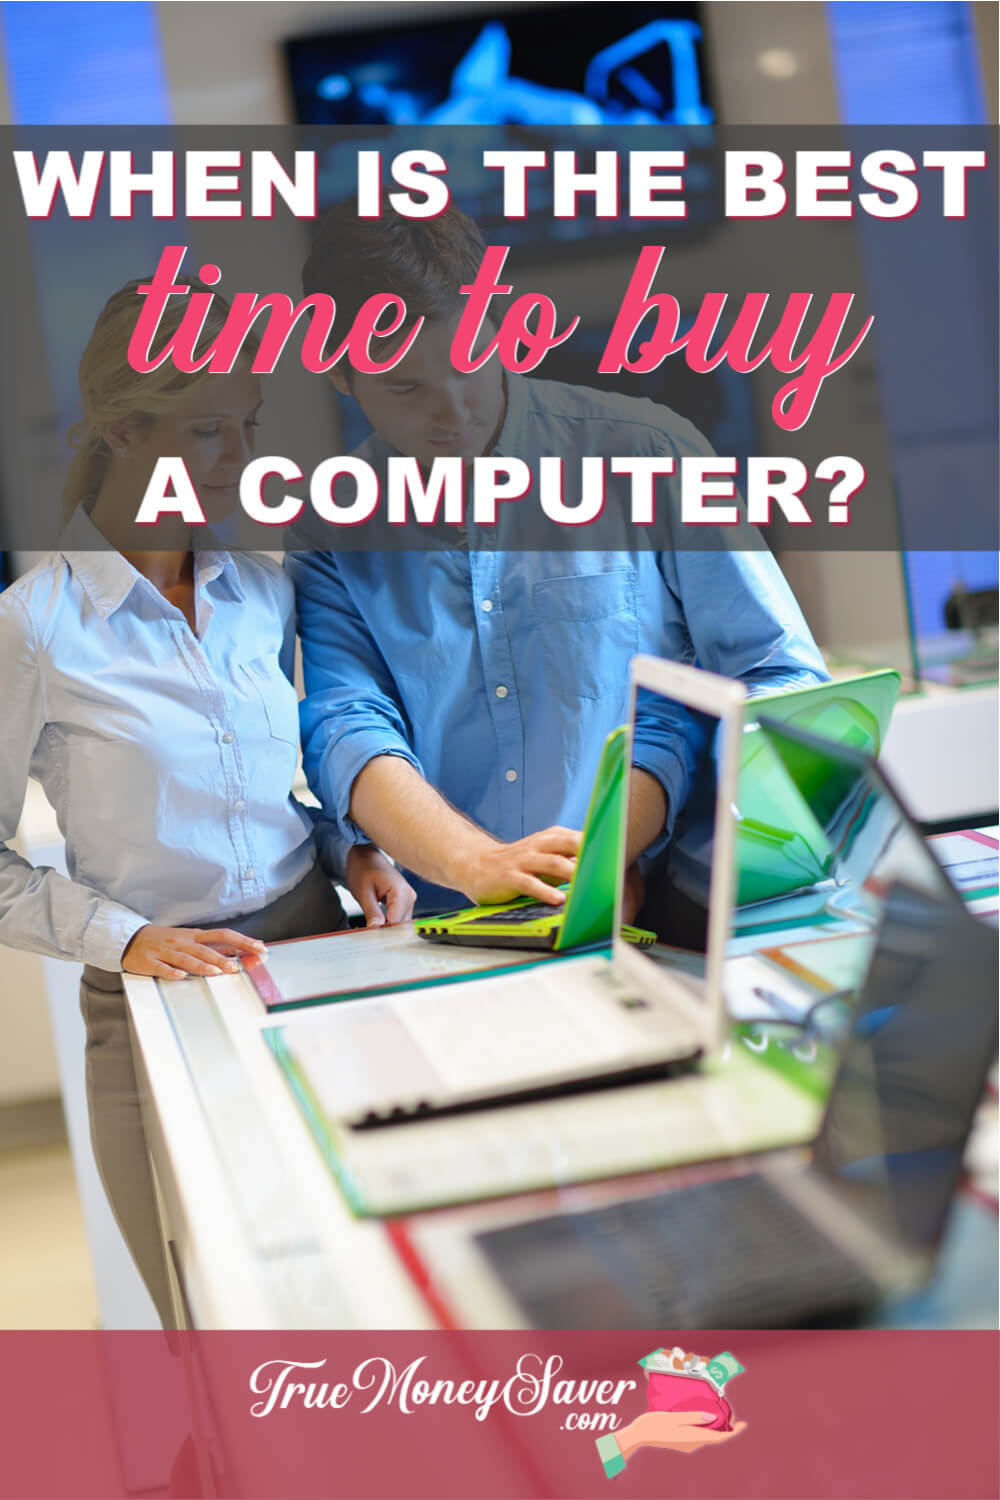 When Is The Best Time To Buy A Computer